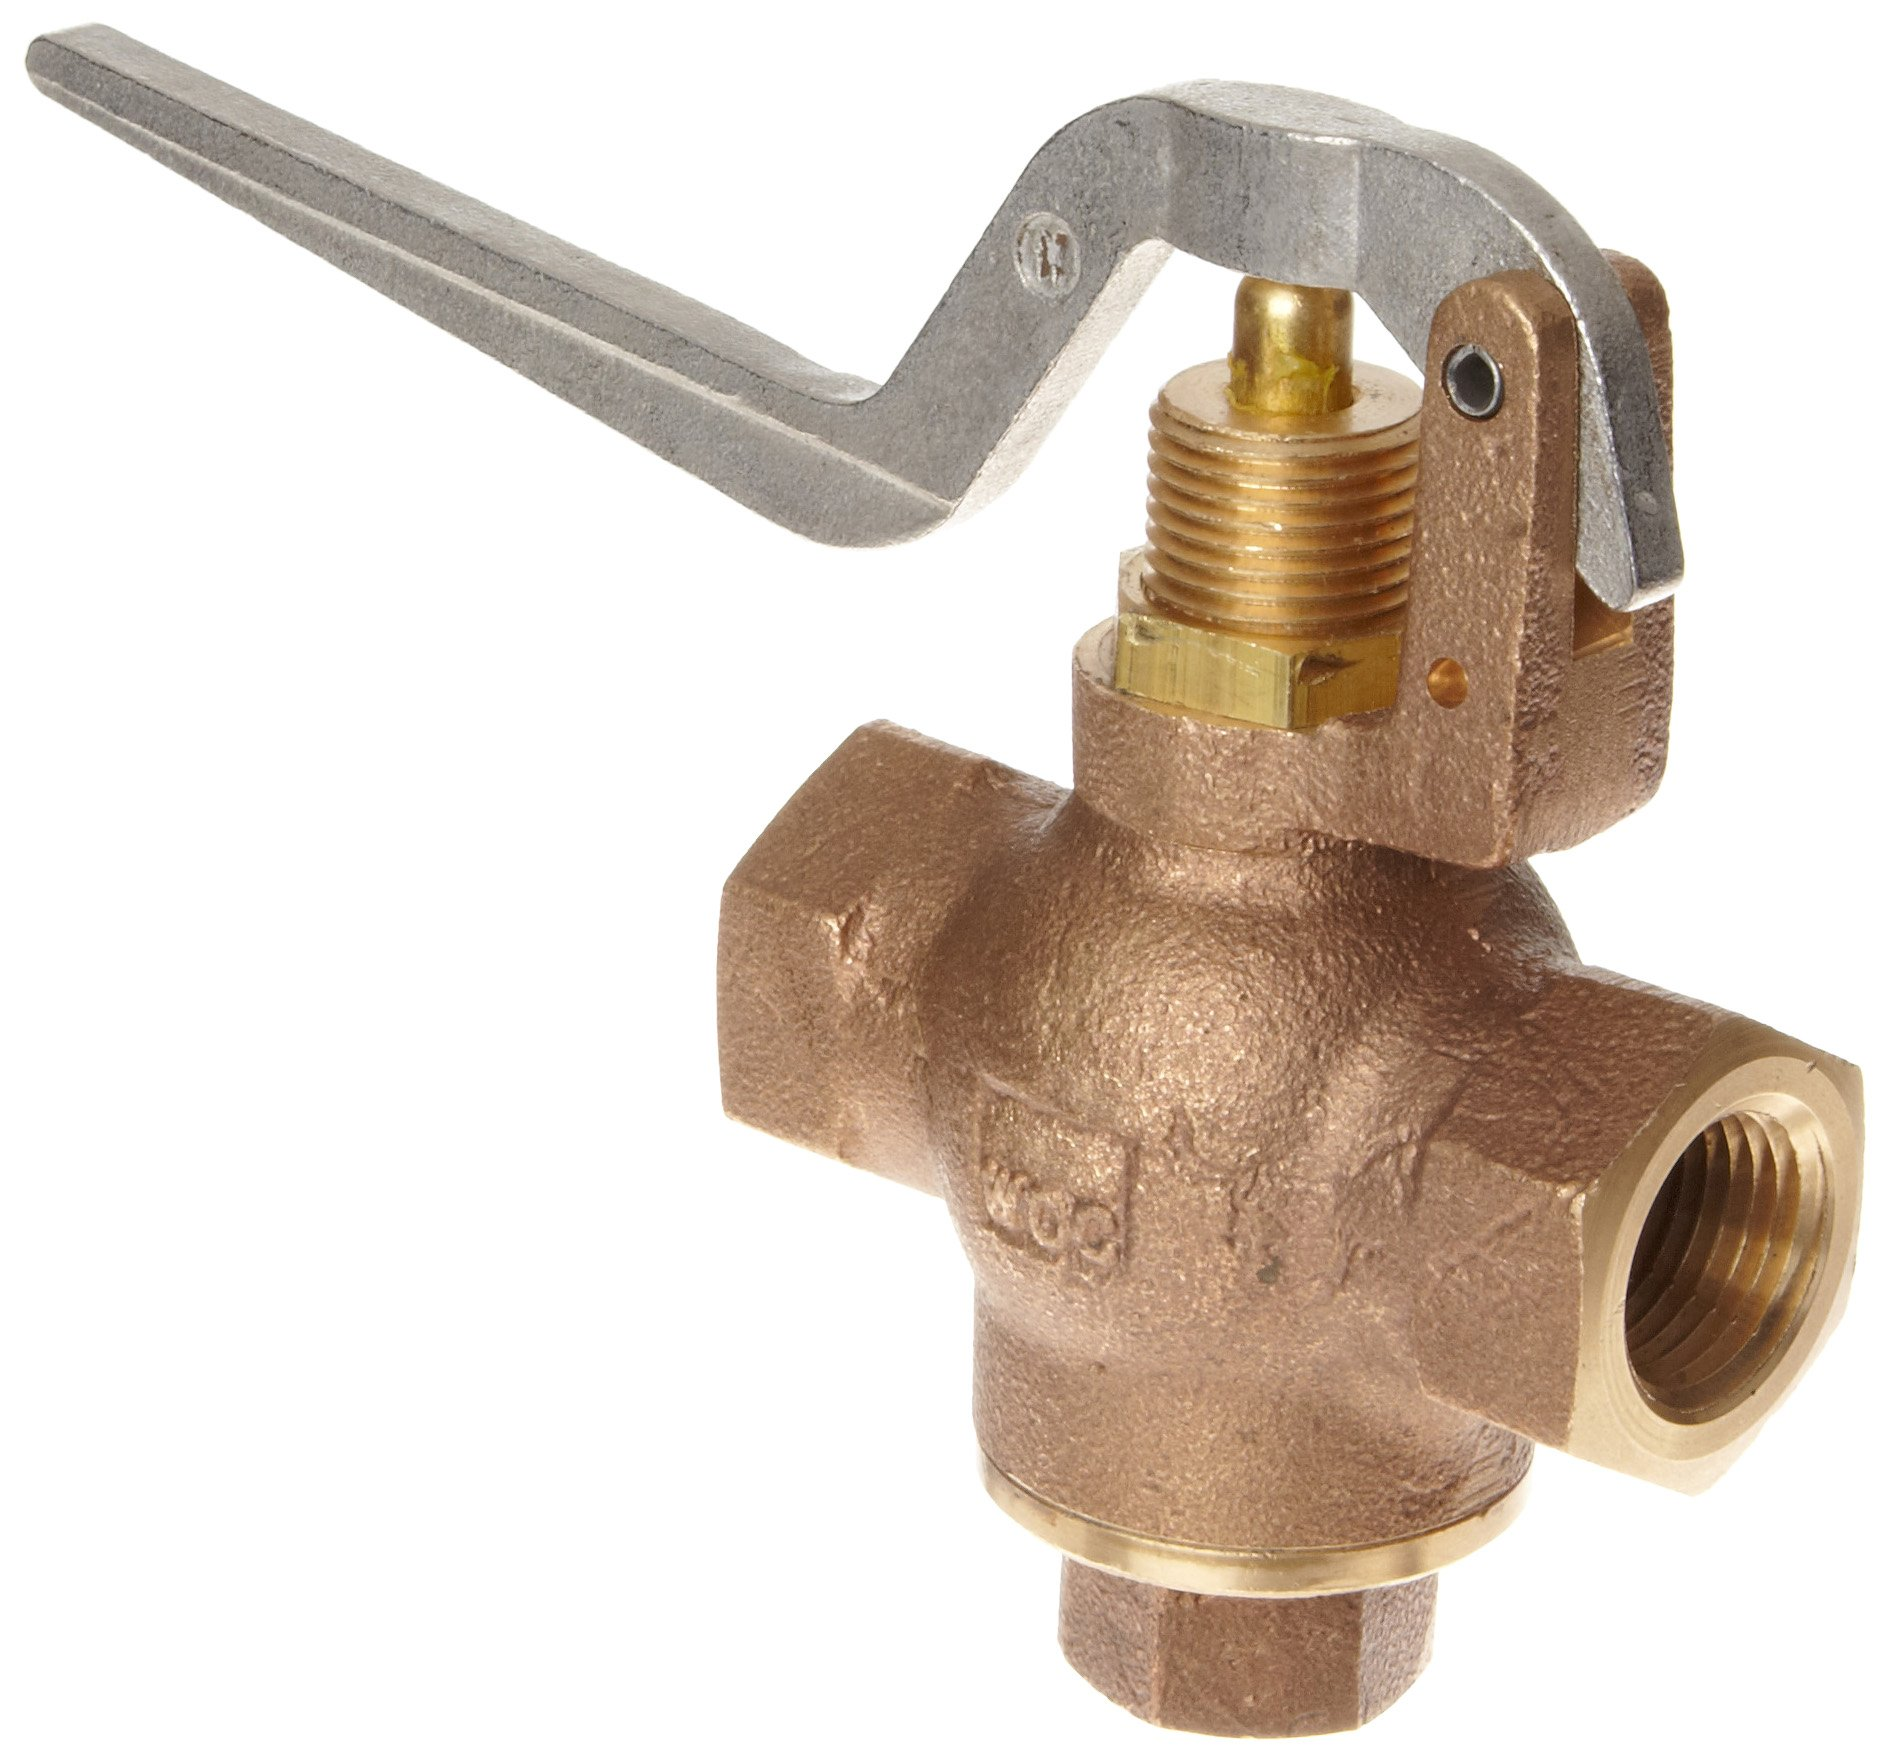 Kingston 305B Series Brass Quick Opening Flow Control Valve, Squeeze Lever, 1/2'' NPT Female